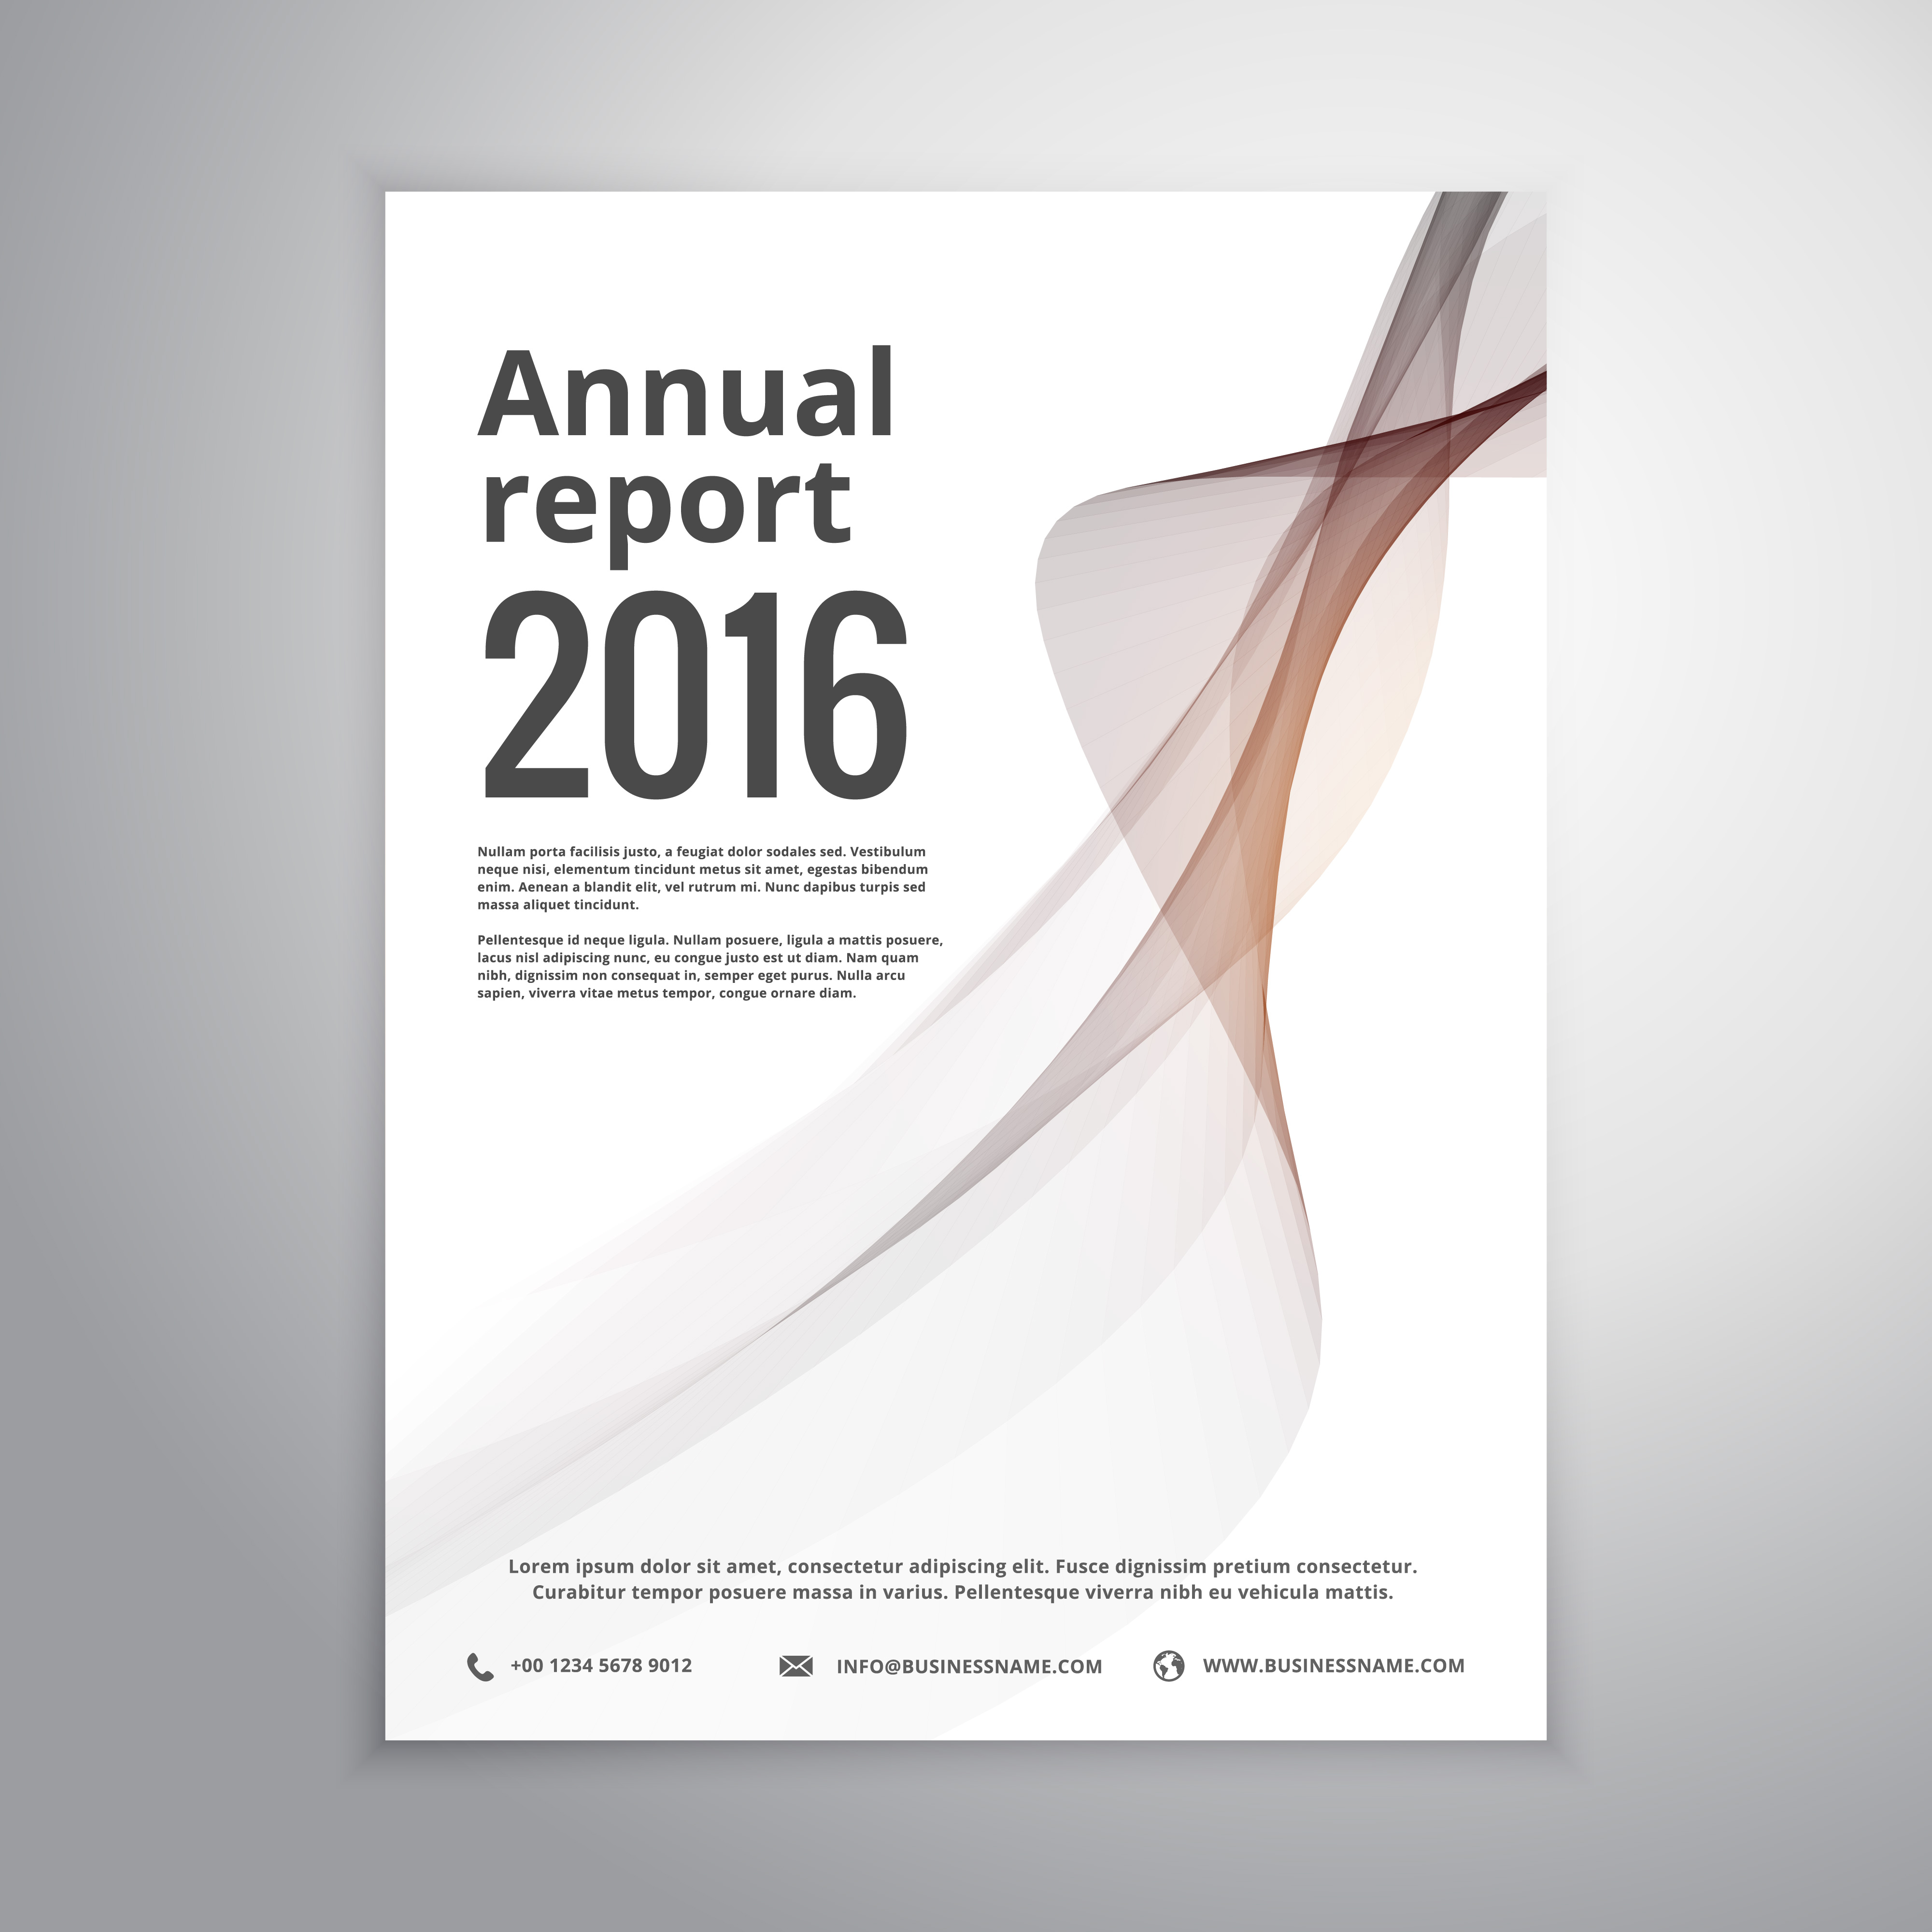 Corporate Annual Report Brochure Identity Template With Gray Wav Download Free Vector Art